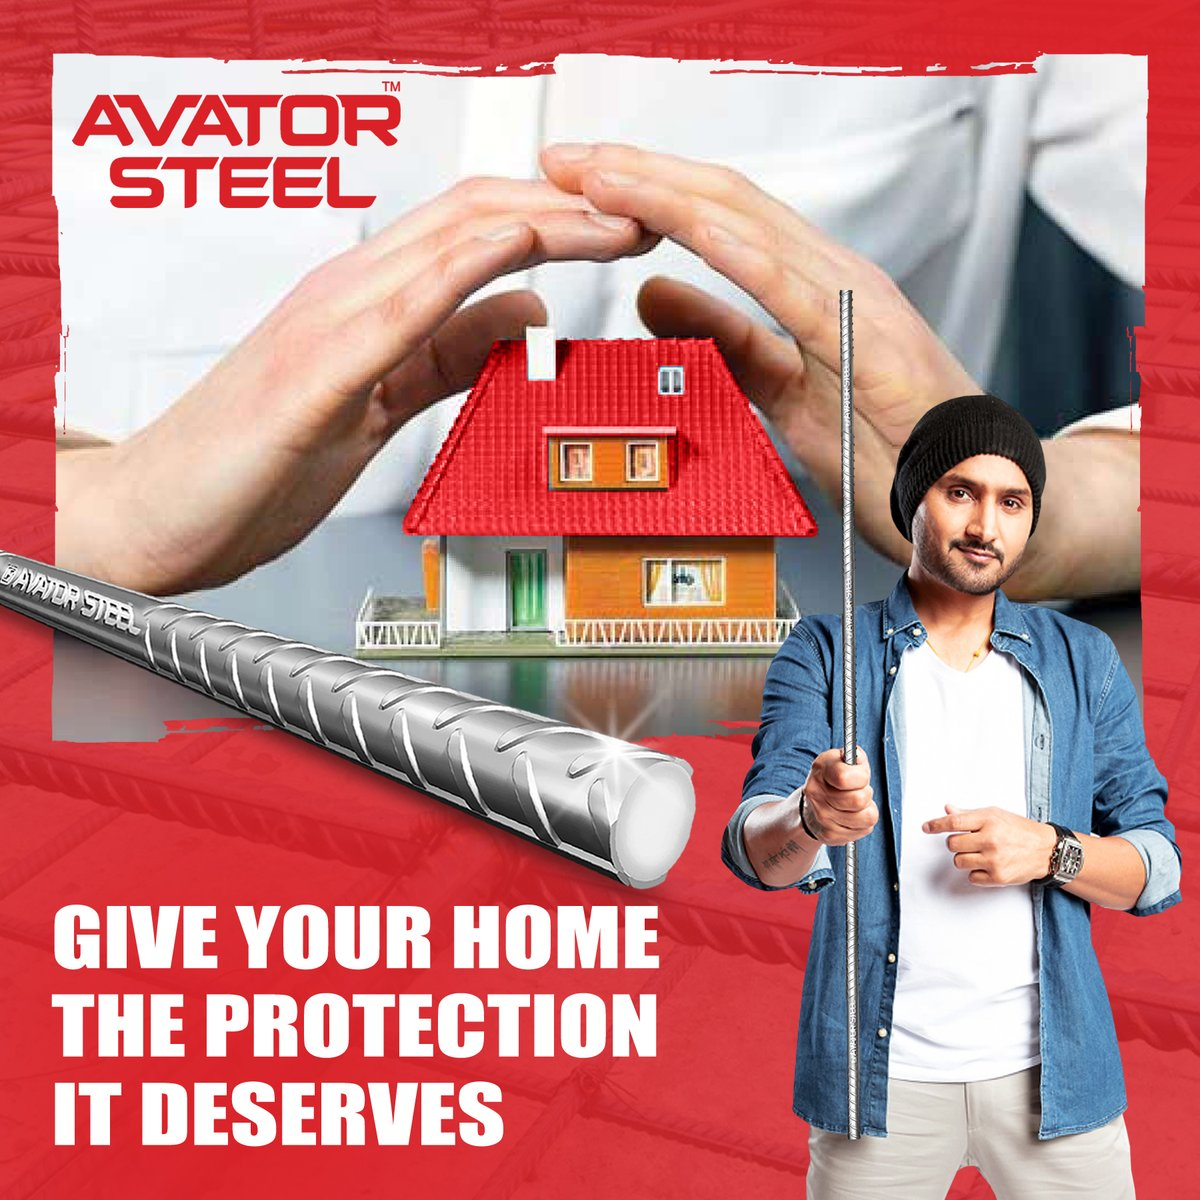 Made with the best in class technology, #AvatorSteel TMT bars give your home the ultimate strength to stand strong for many years.   #AvatorSteel #HarbhajanSingh   @harbhajan_singh